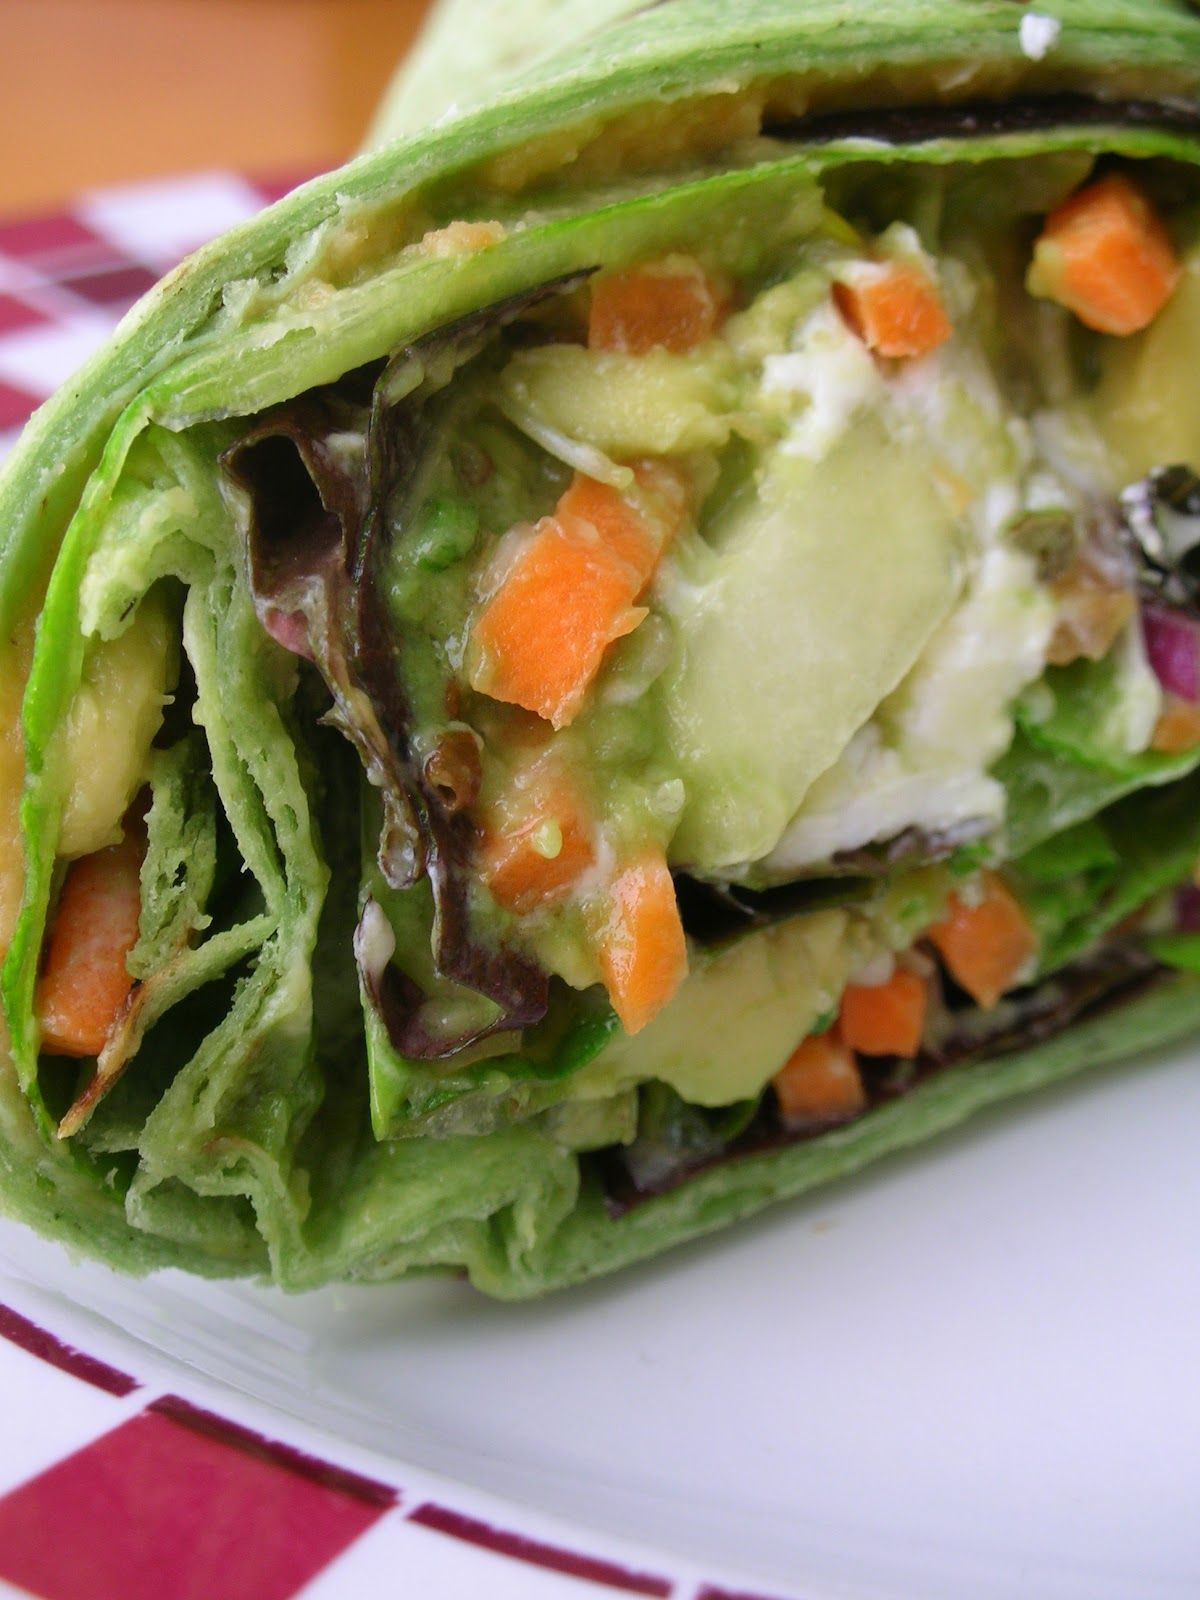 Veggie Wraps with Hummus and Goat Cheese.